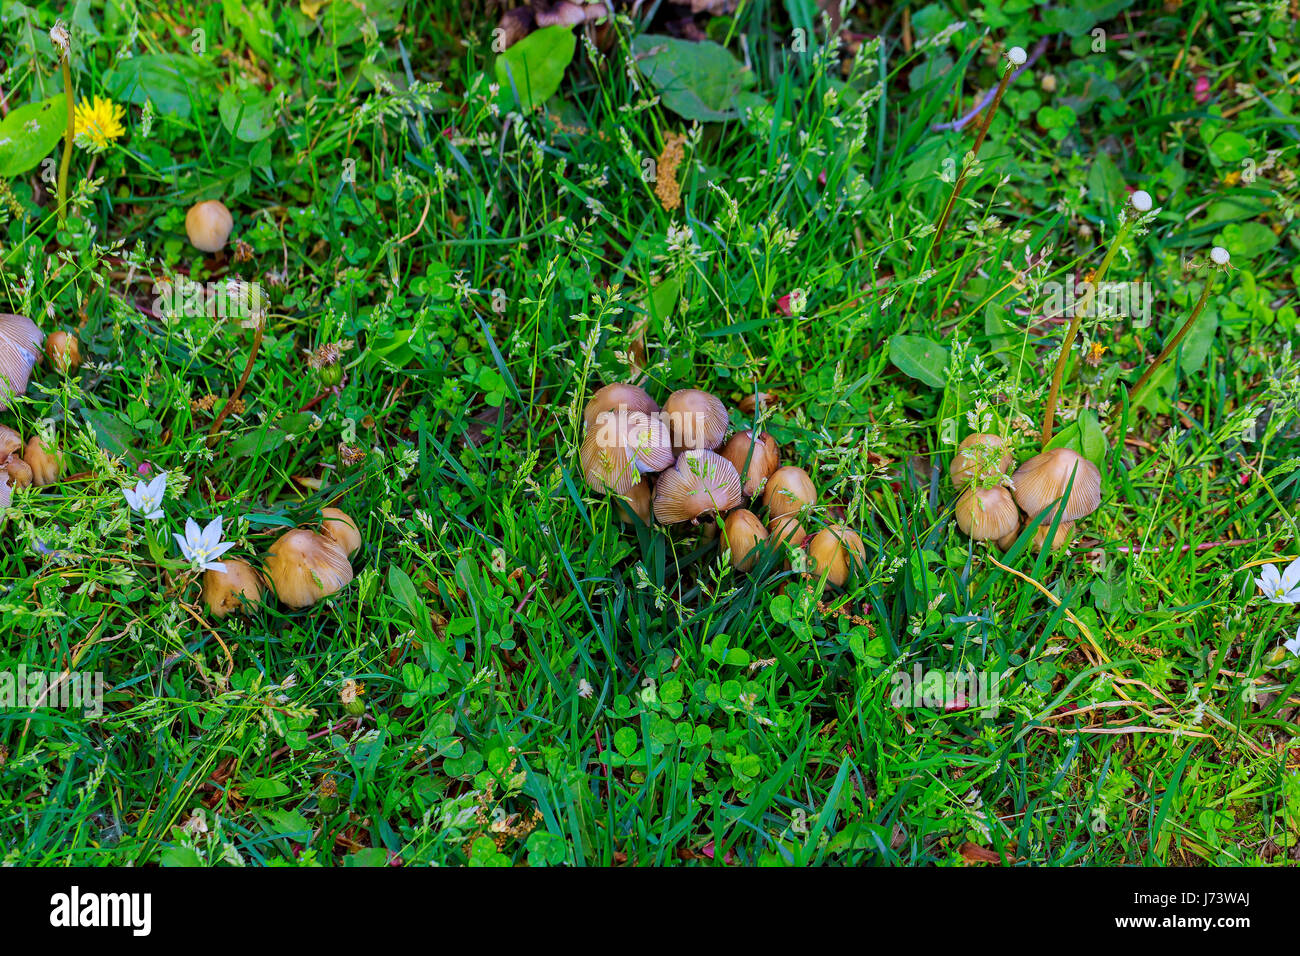 mushrooms growing in grass mushrooms in the grass stock photo